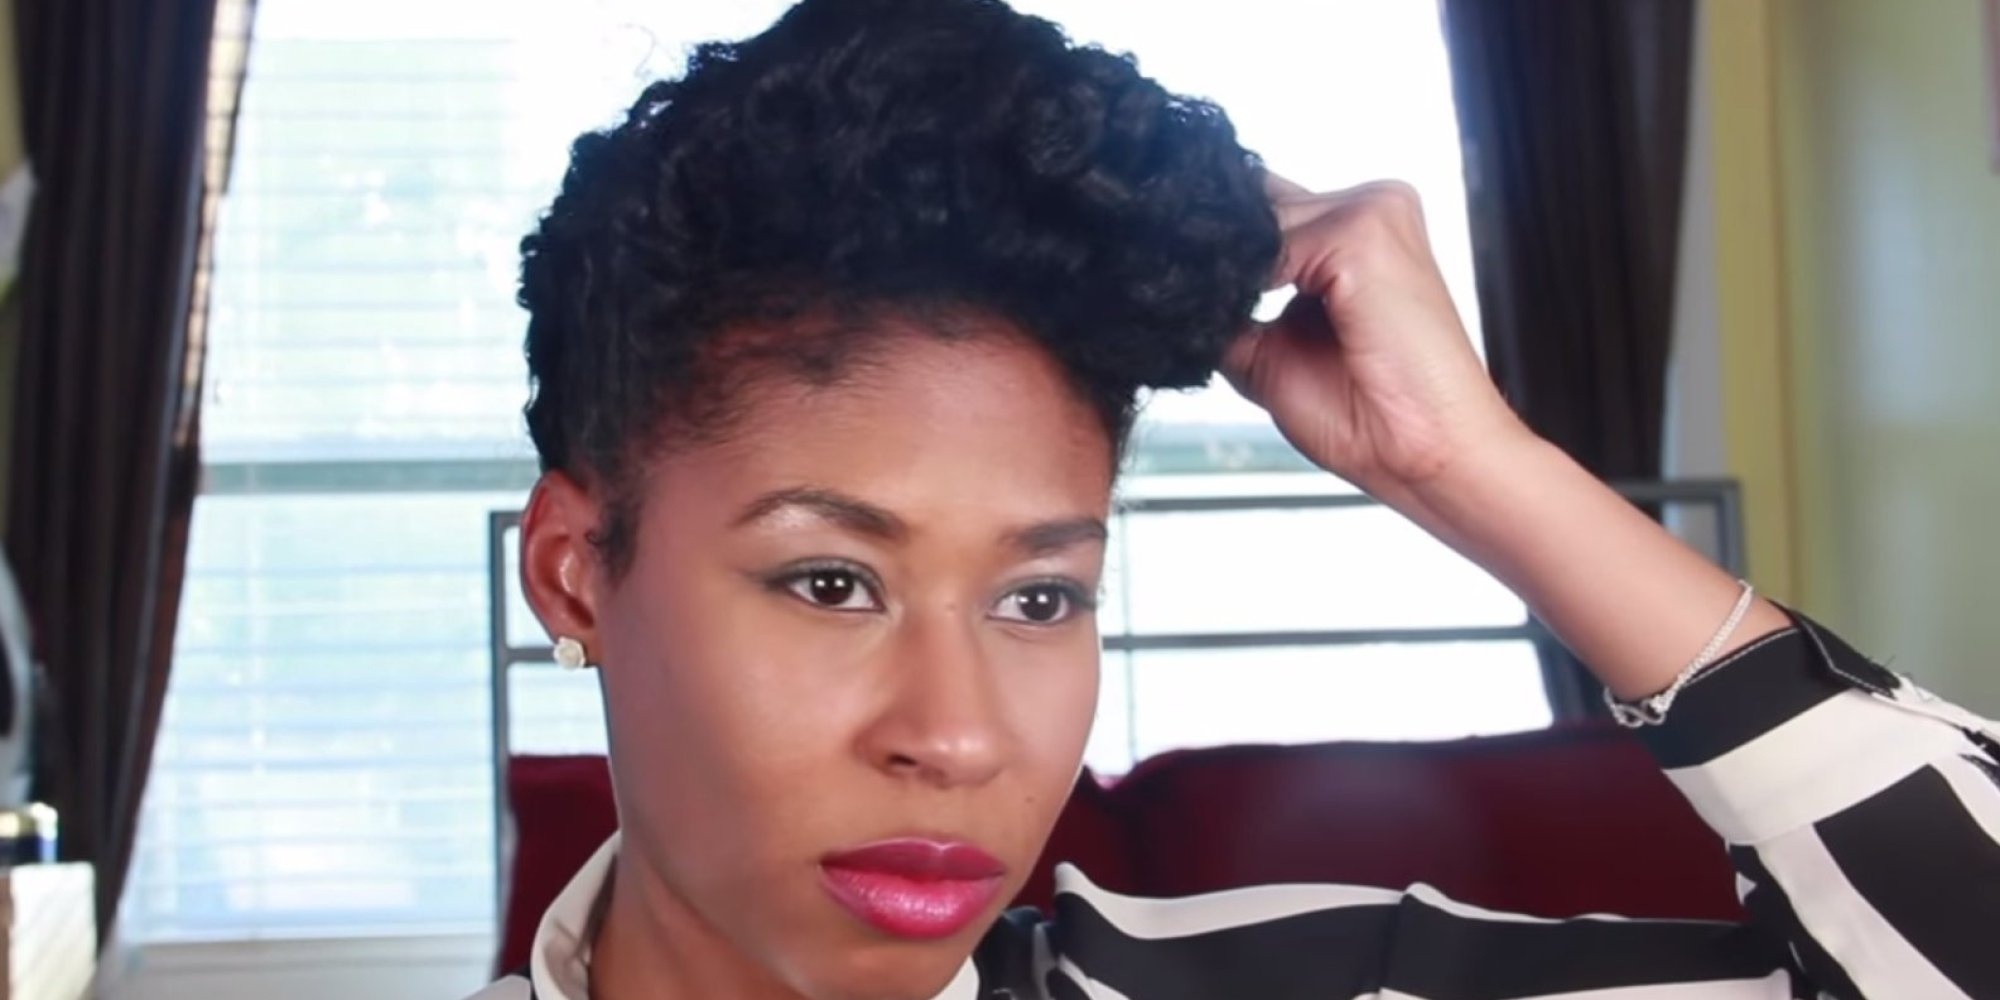 five natural hairstyle ideas for busy moms | huffpost